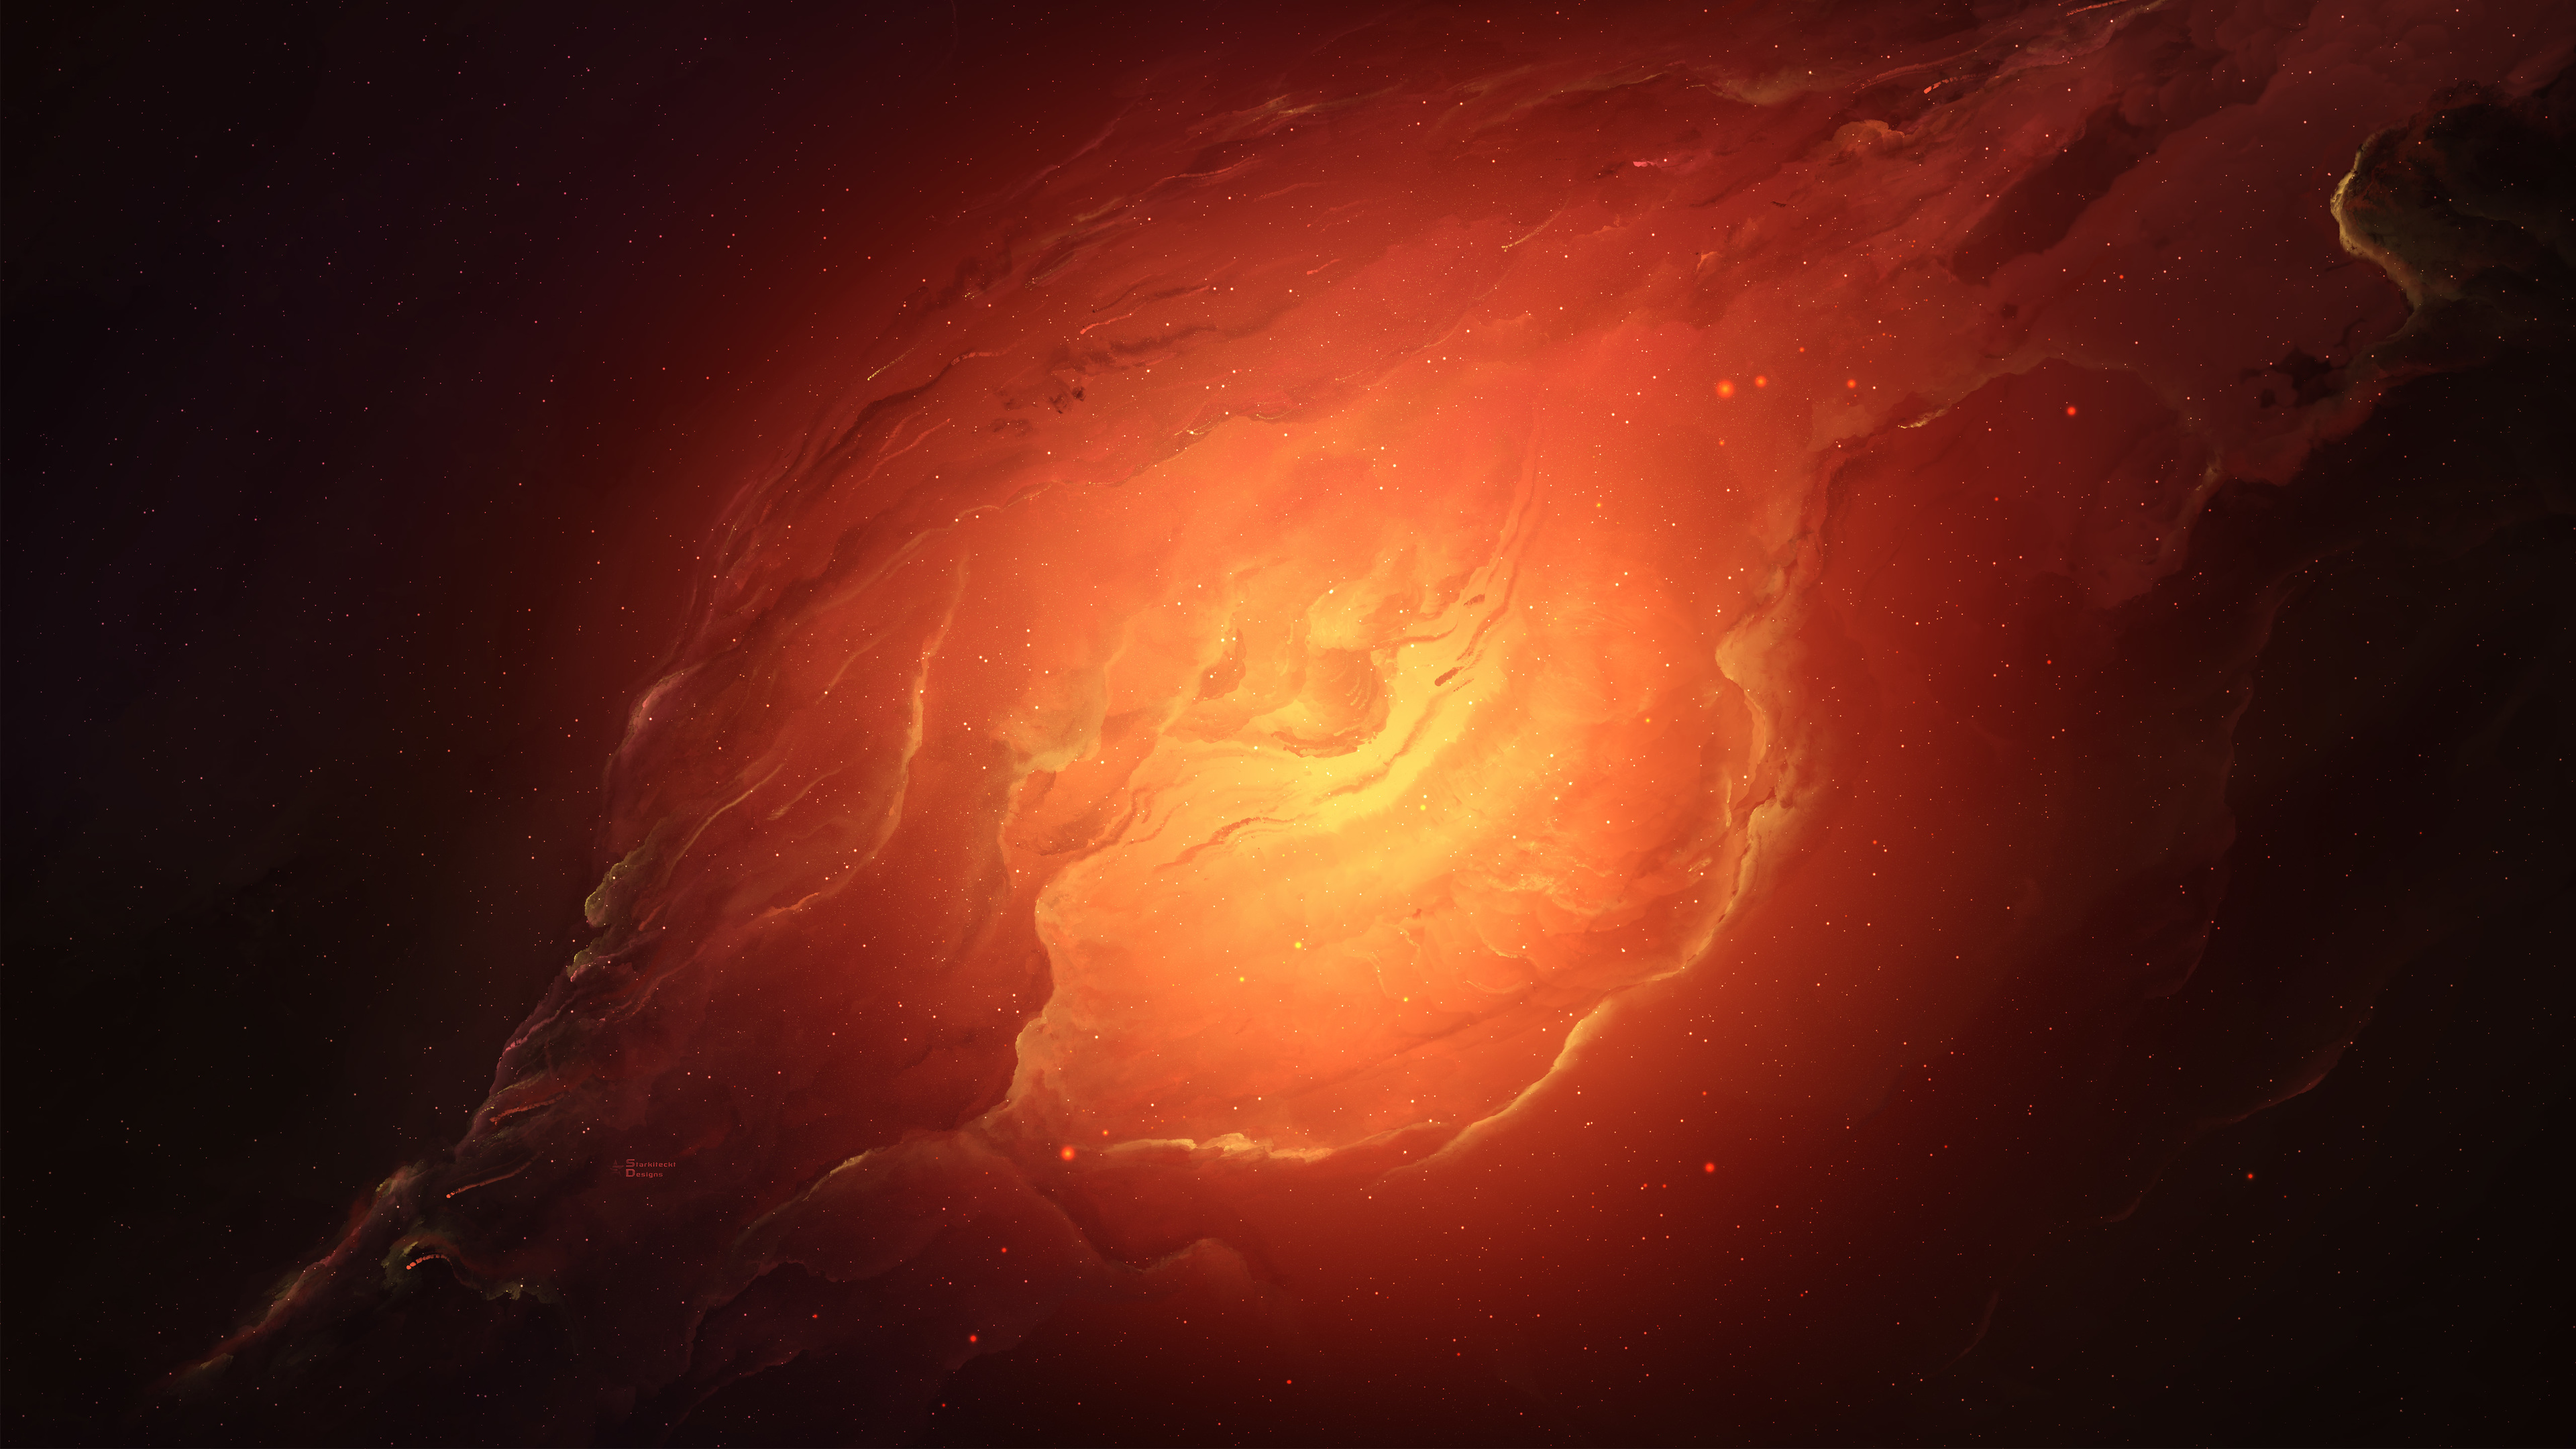 scifi nebula orange space 5k 1540752906 - Scifi Nebula Orange Space 5k - space wallpapers, scifi wallpapers, nebula wallpapers, hd-wallpapers, 5k wallpapers, 4k-wallpapers